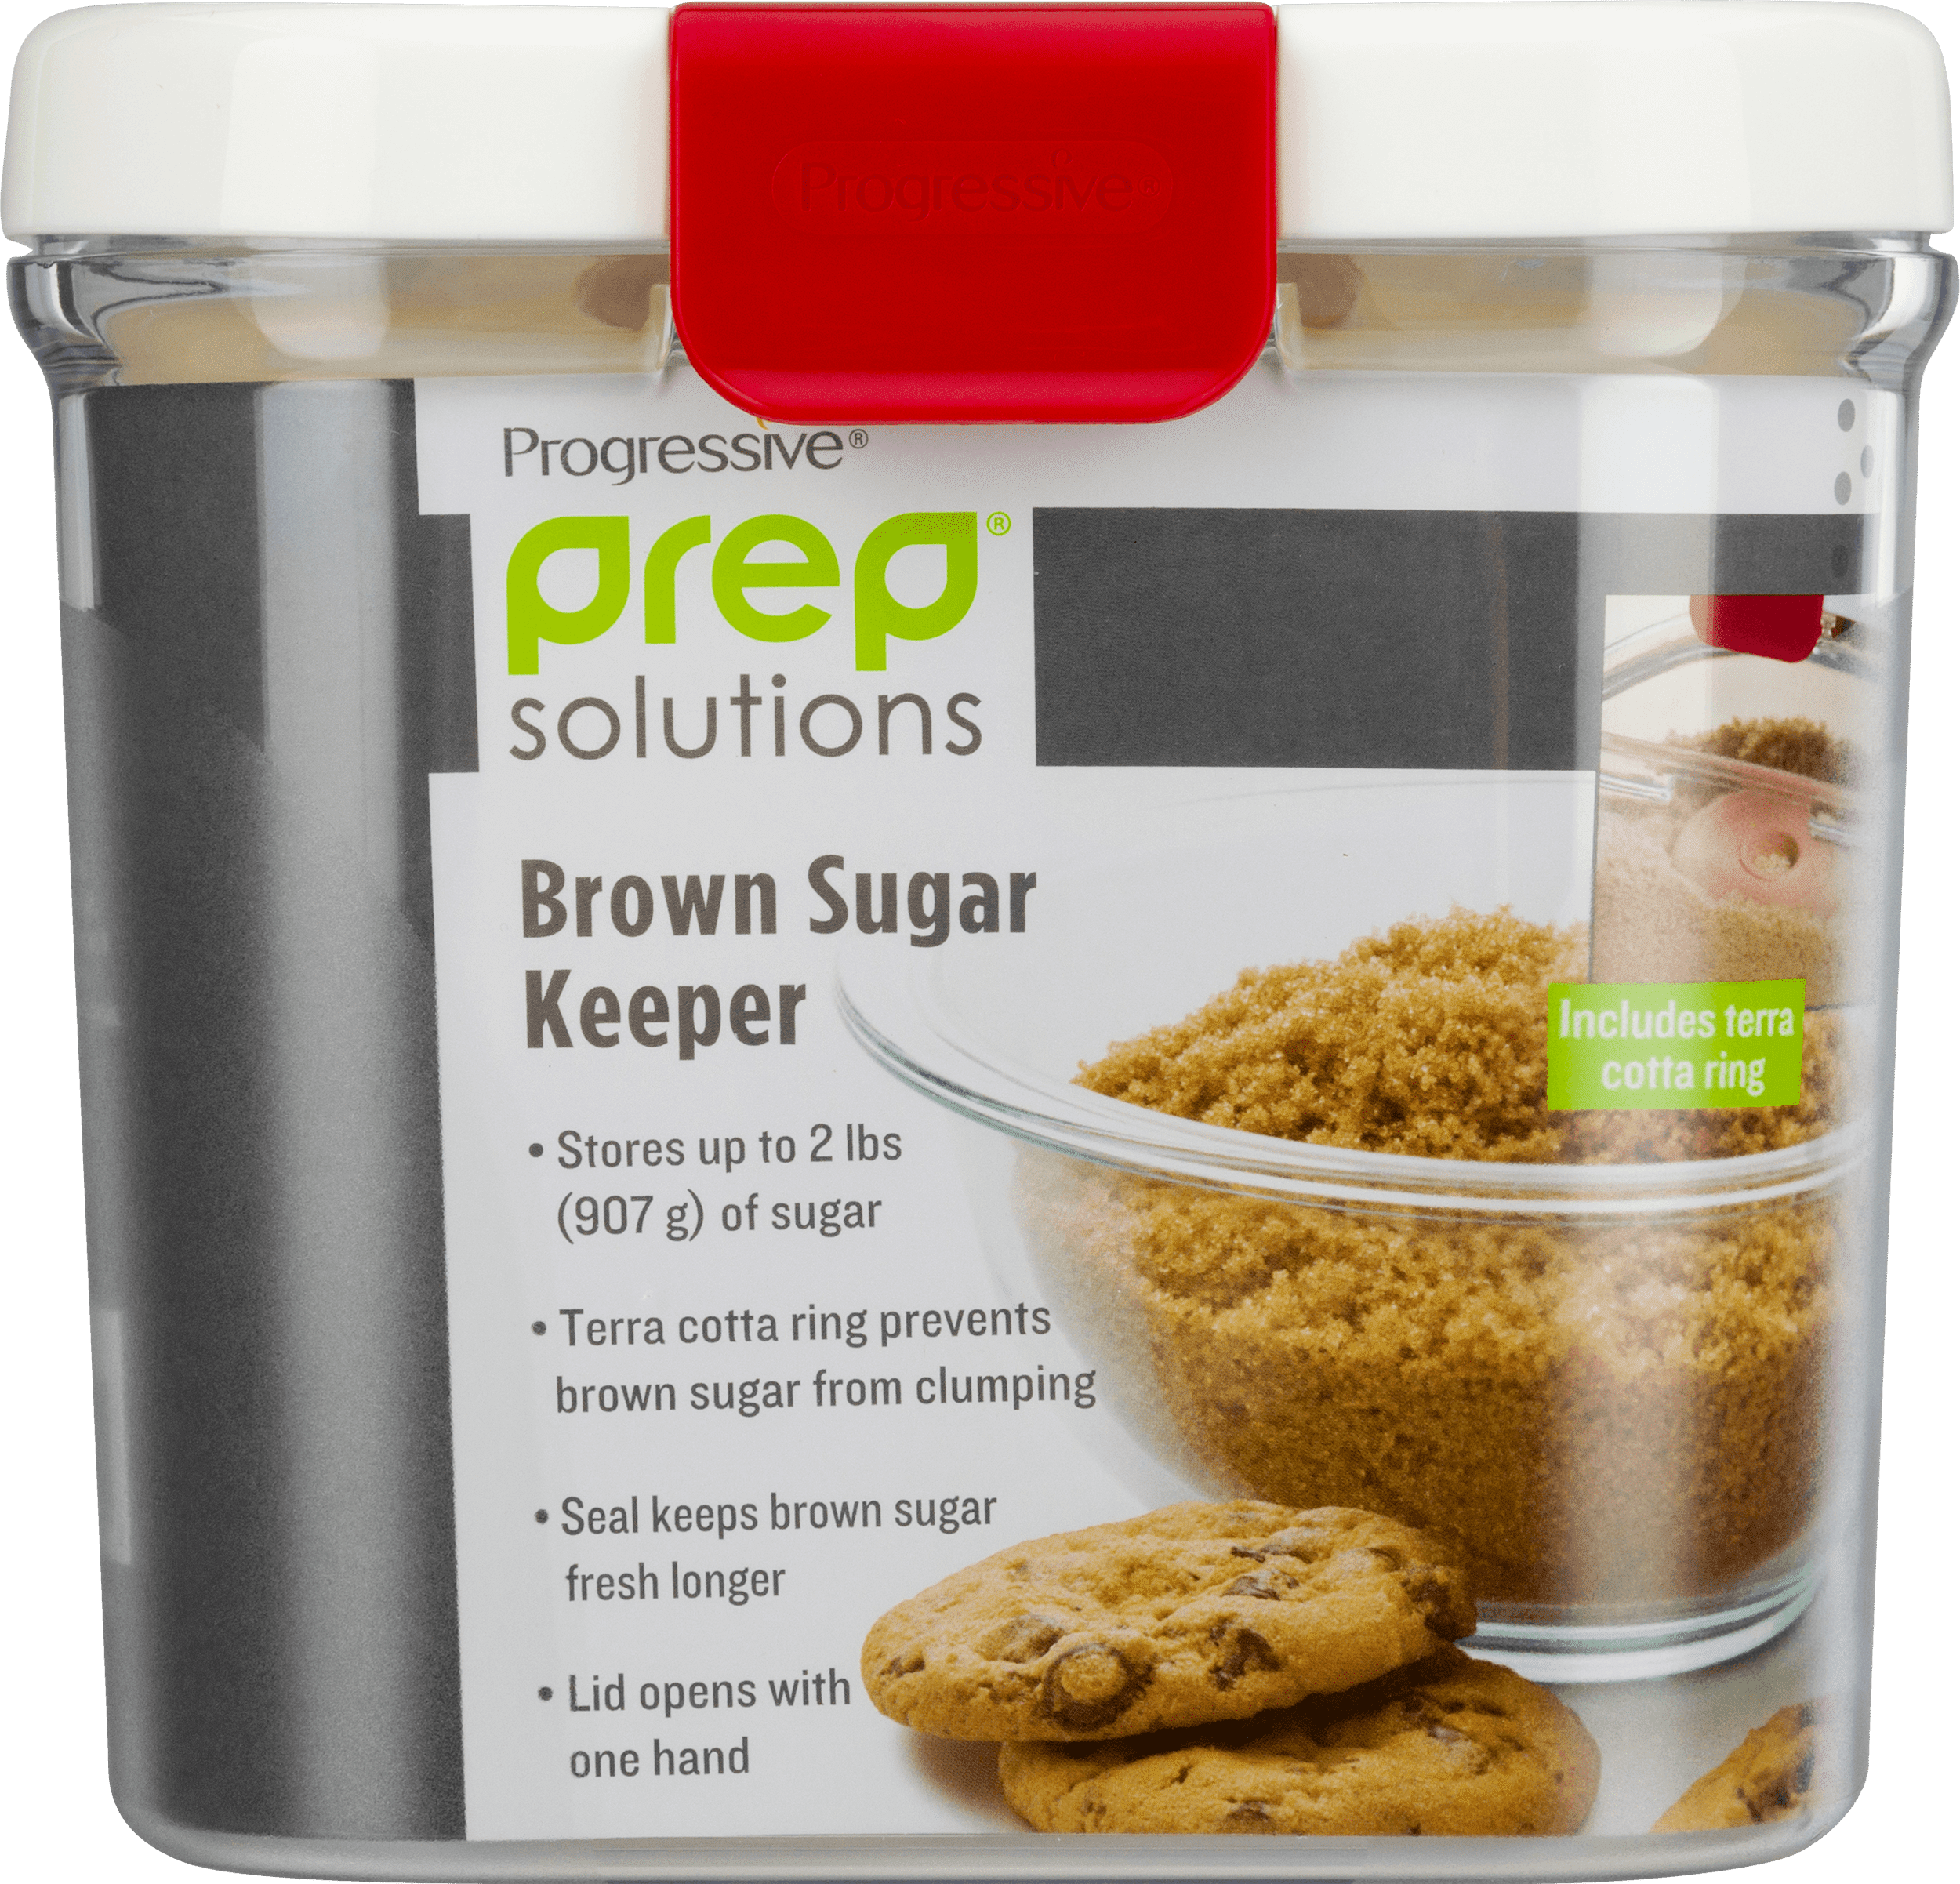 Progressive DKS-200 Prep Solutions by  Brown Sugar Keeper